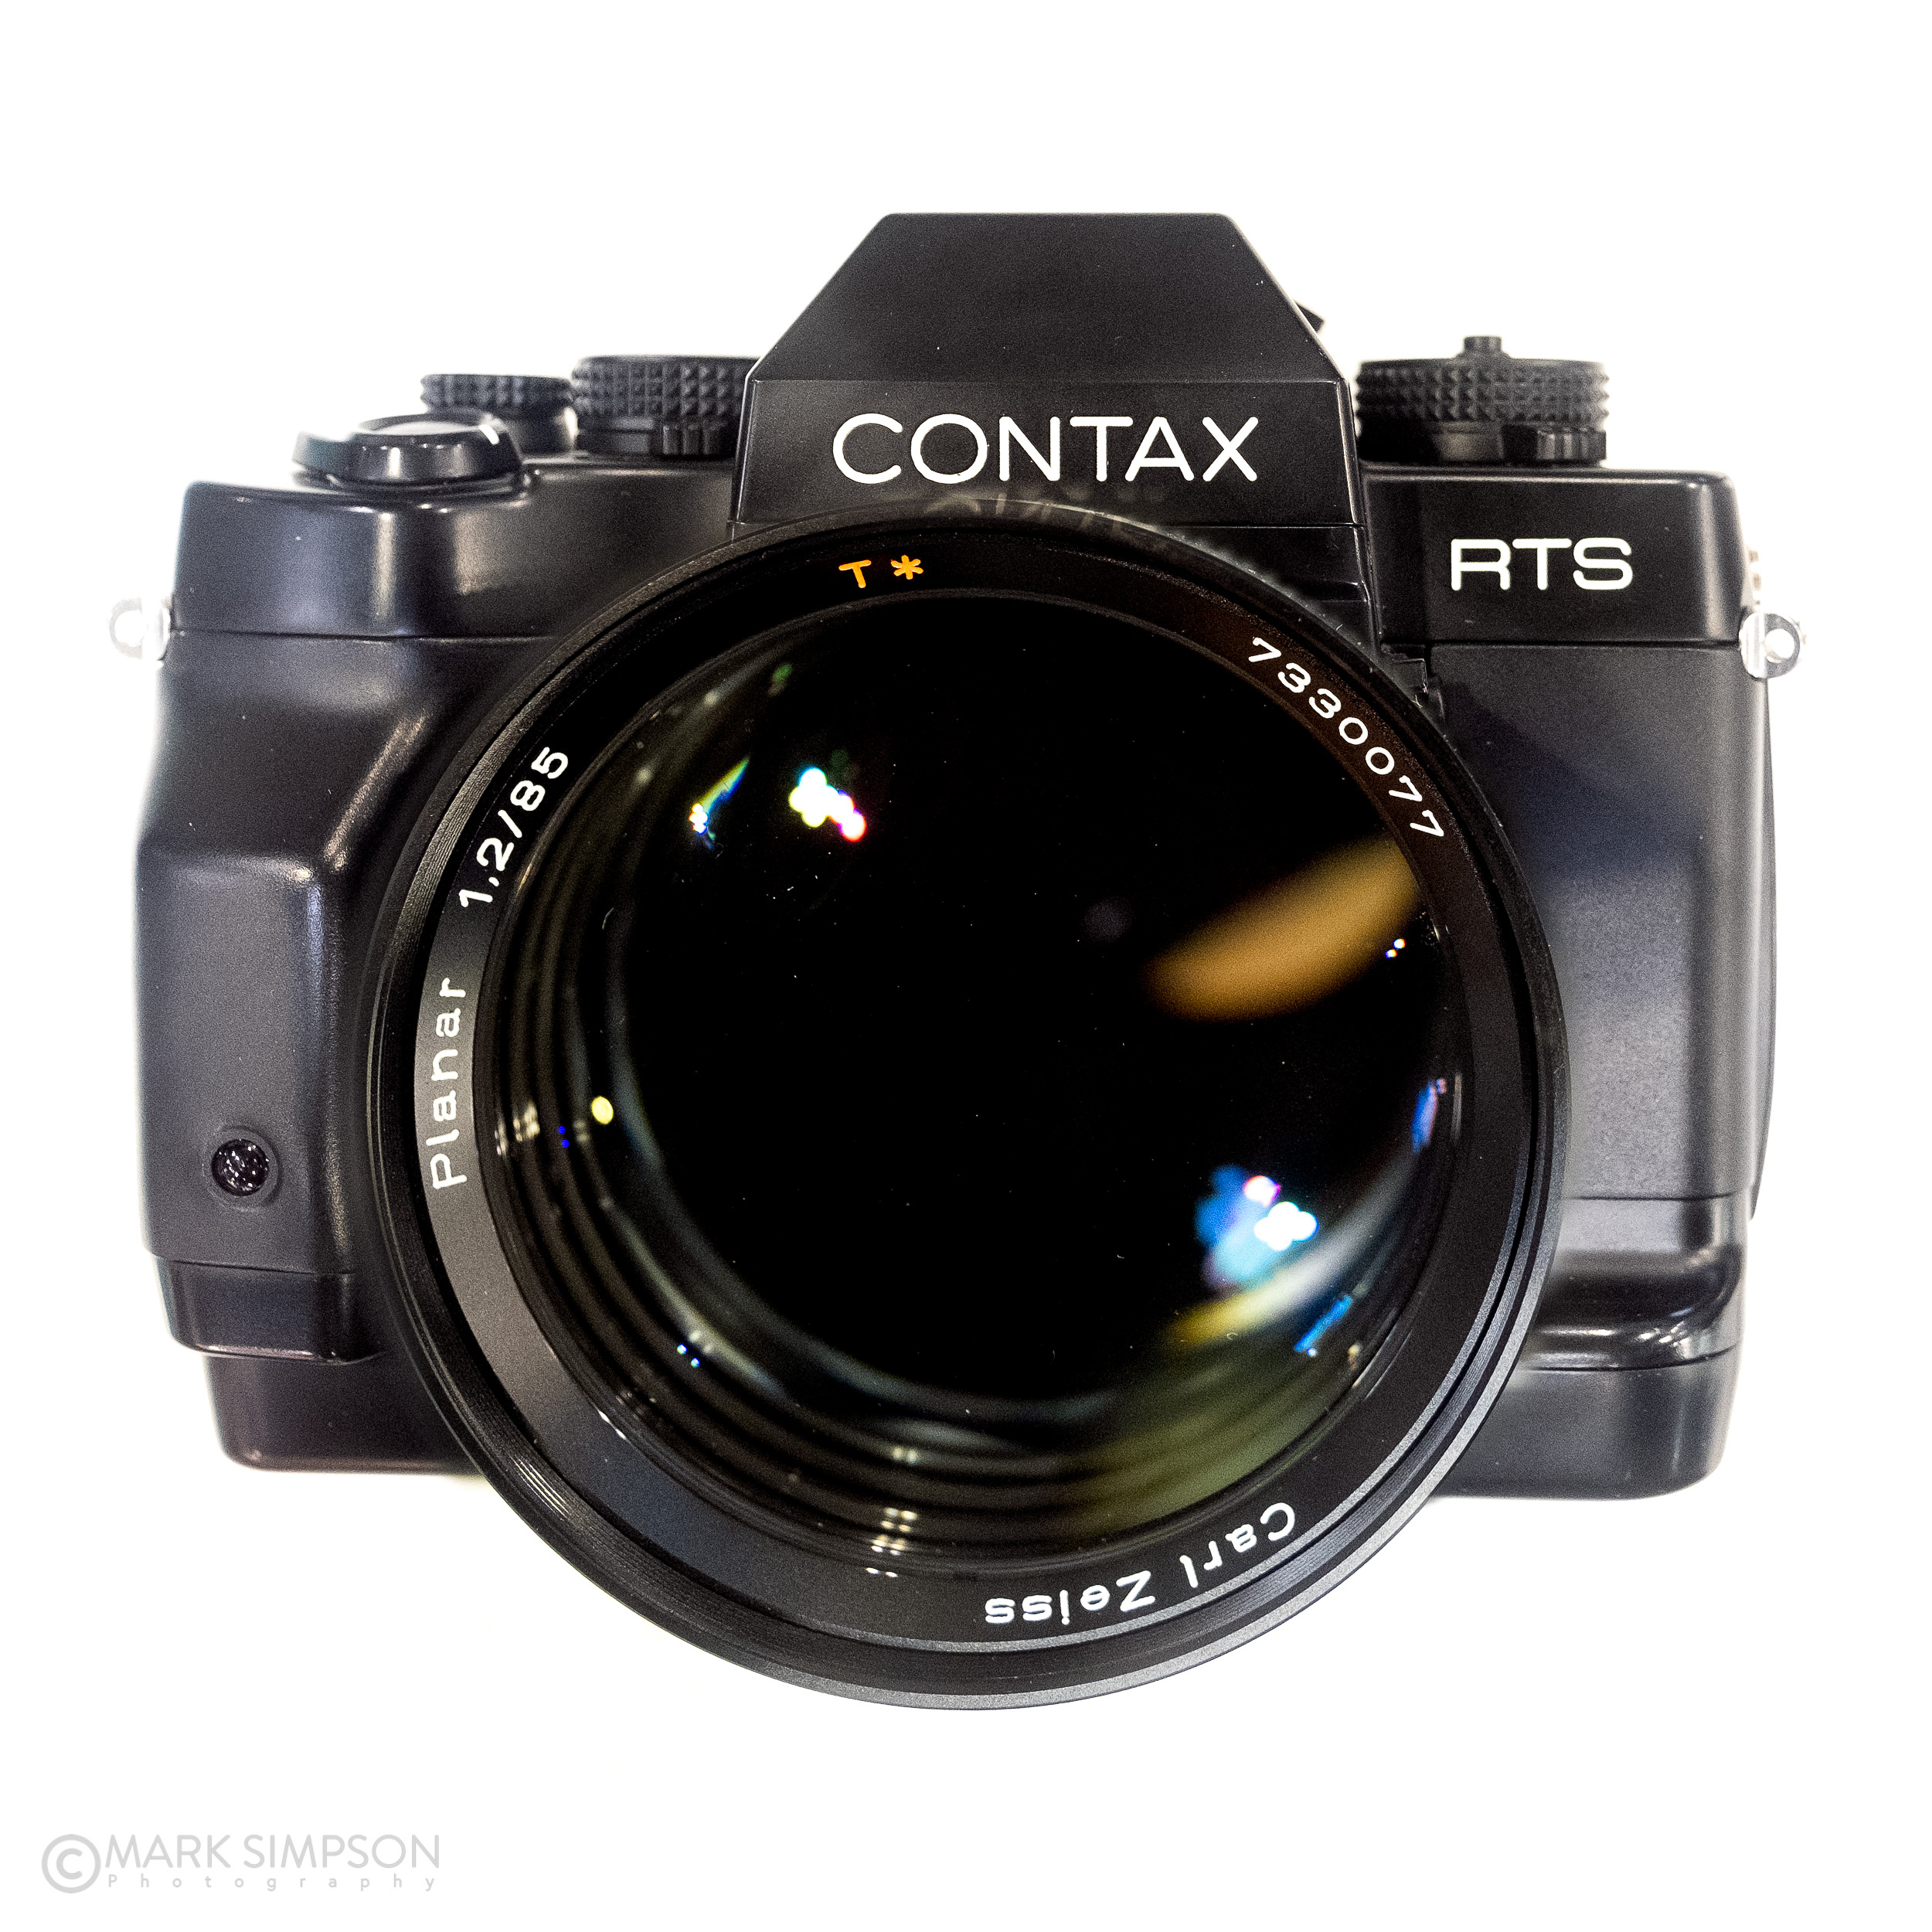 A beauty of a CONTAX RTS III and a holy grail Carl Zeiss Planar 85mm F/1.2 60 years (very) limited edition on the Zeiss stand. (FujiFilm X-T2, Fujinon XF16-55mmF2.8 R LM WR)